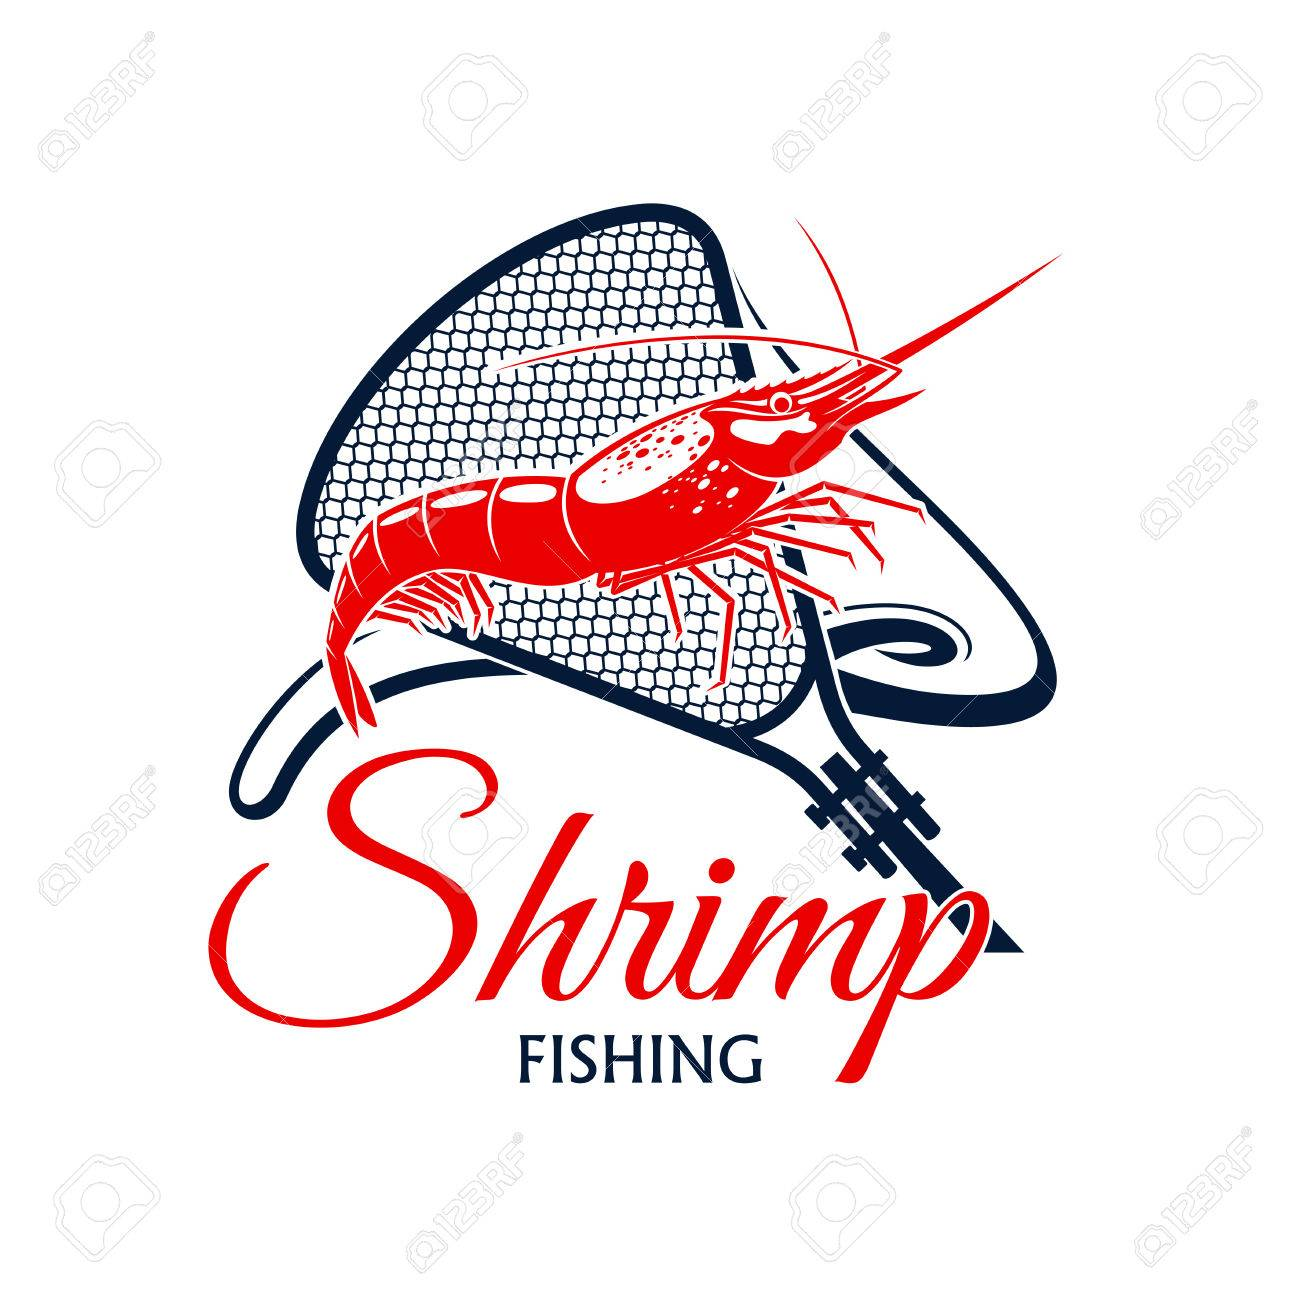 Shrimp fishing vector icon with fishnet snare or scoop-net grid